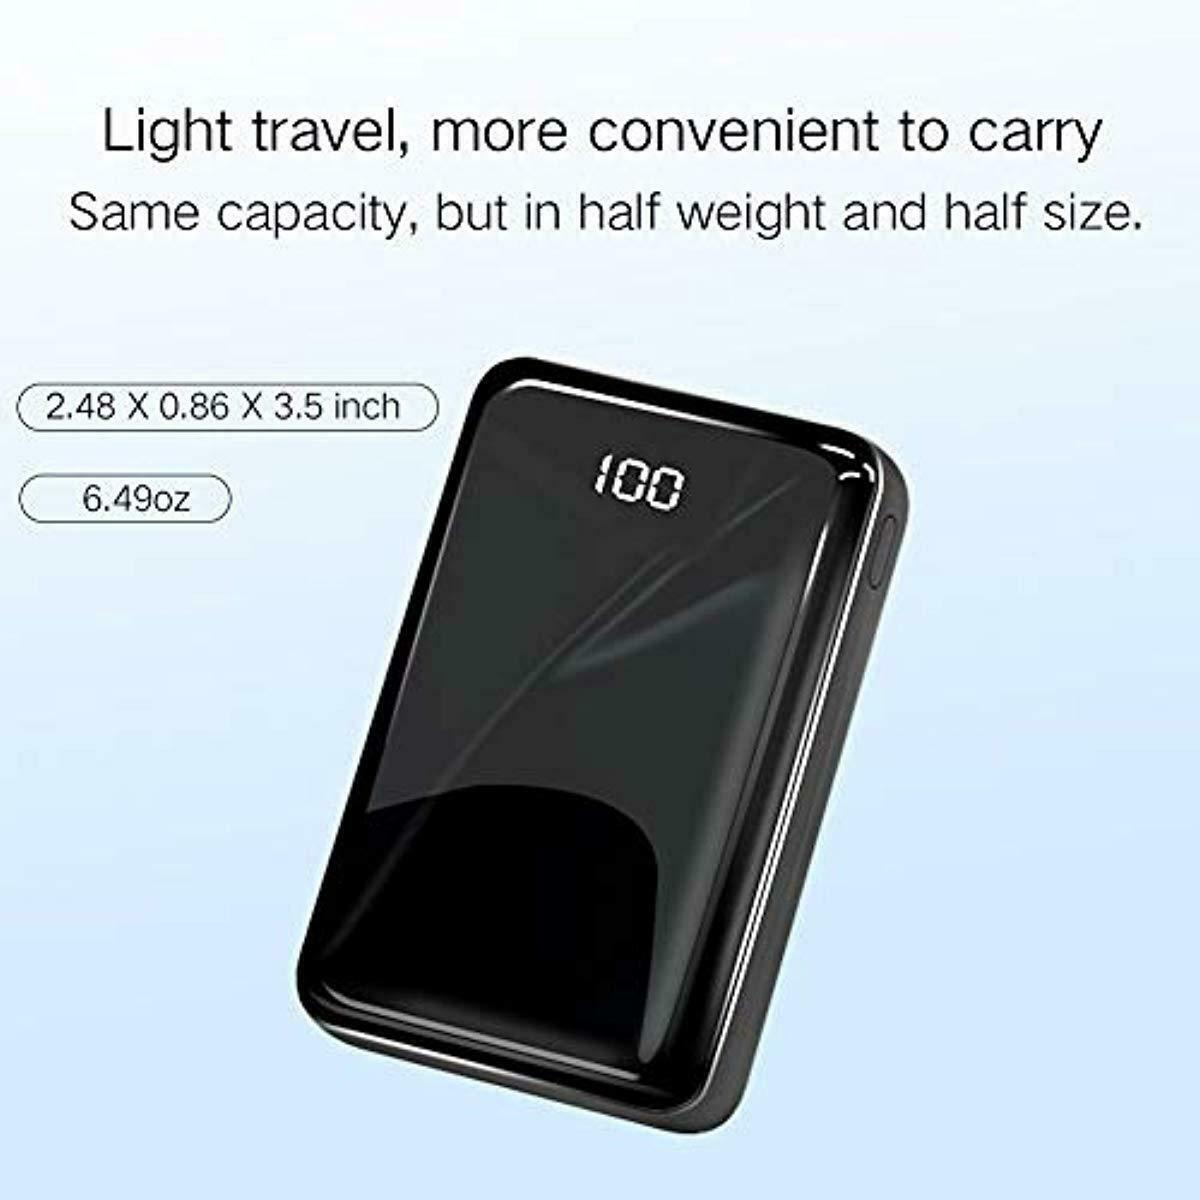 Batteries Changer Power Bank 10000mAh Speed Charging for IPhone, Samsung New